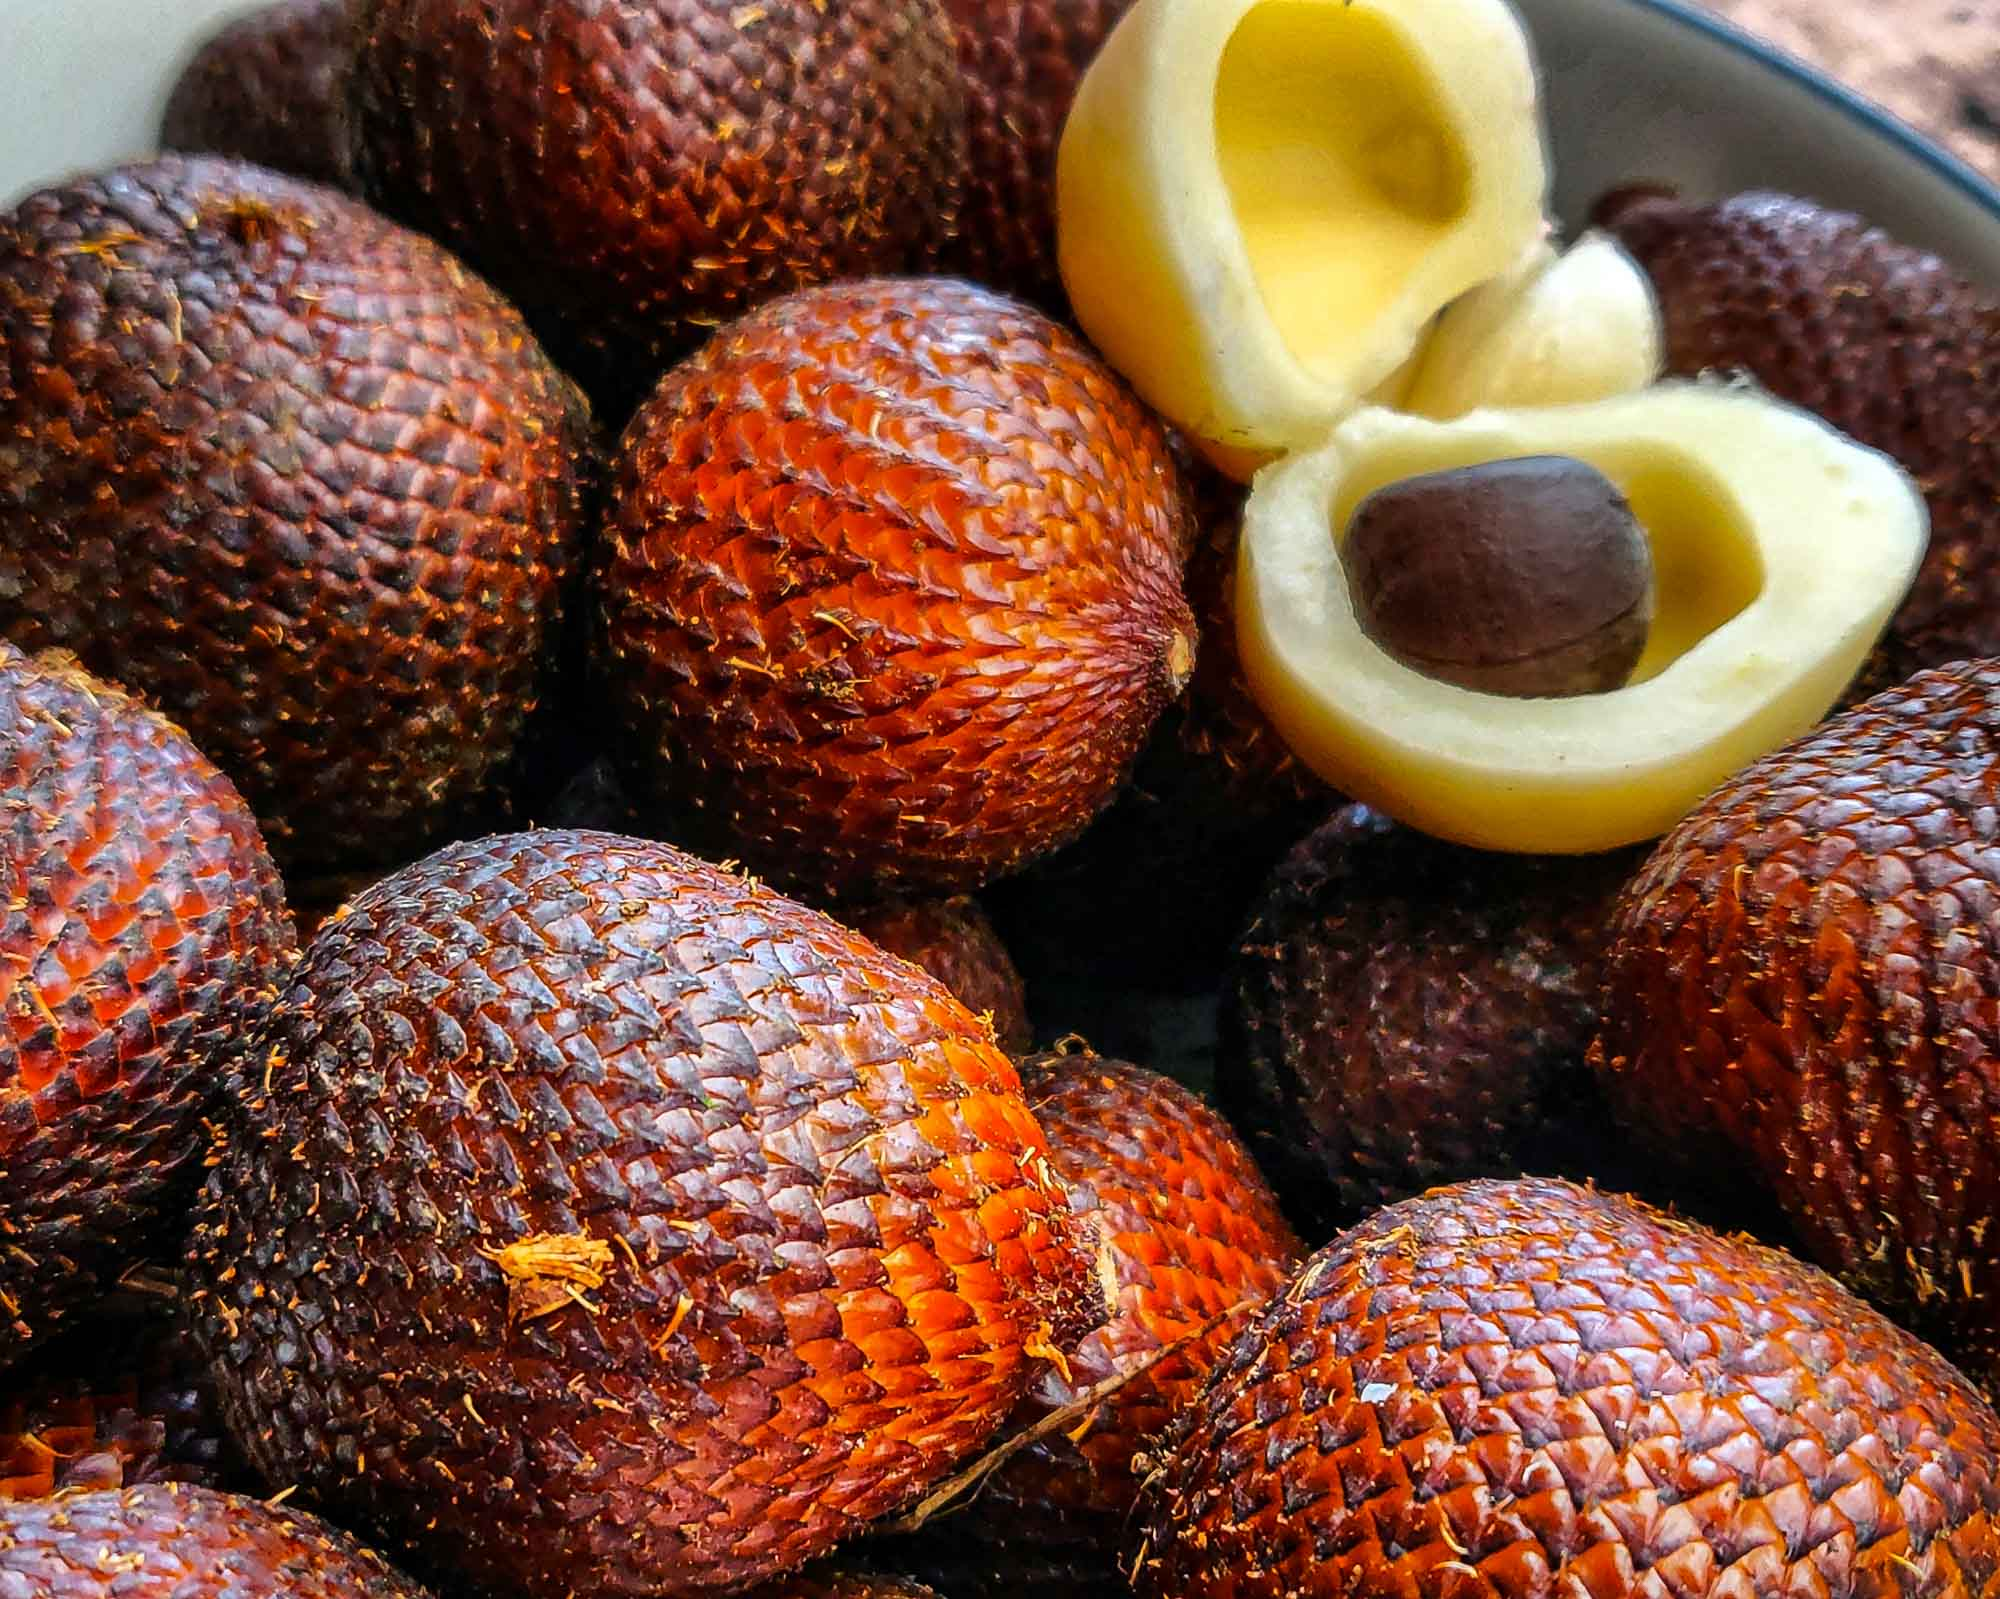 Snakefruit is also known as salak and one of the exotic fruits native to Java and Sumatra but you can also find them in Bali, Lombok, Timor, Maluku, and Sulawesi.